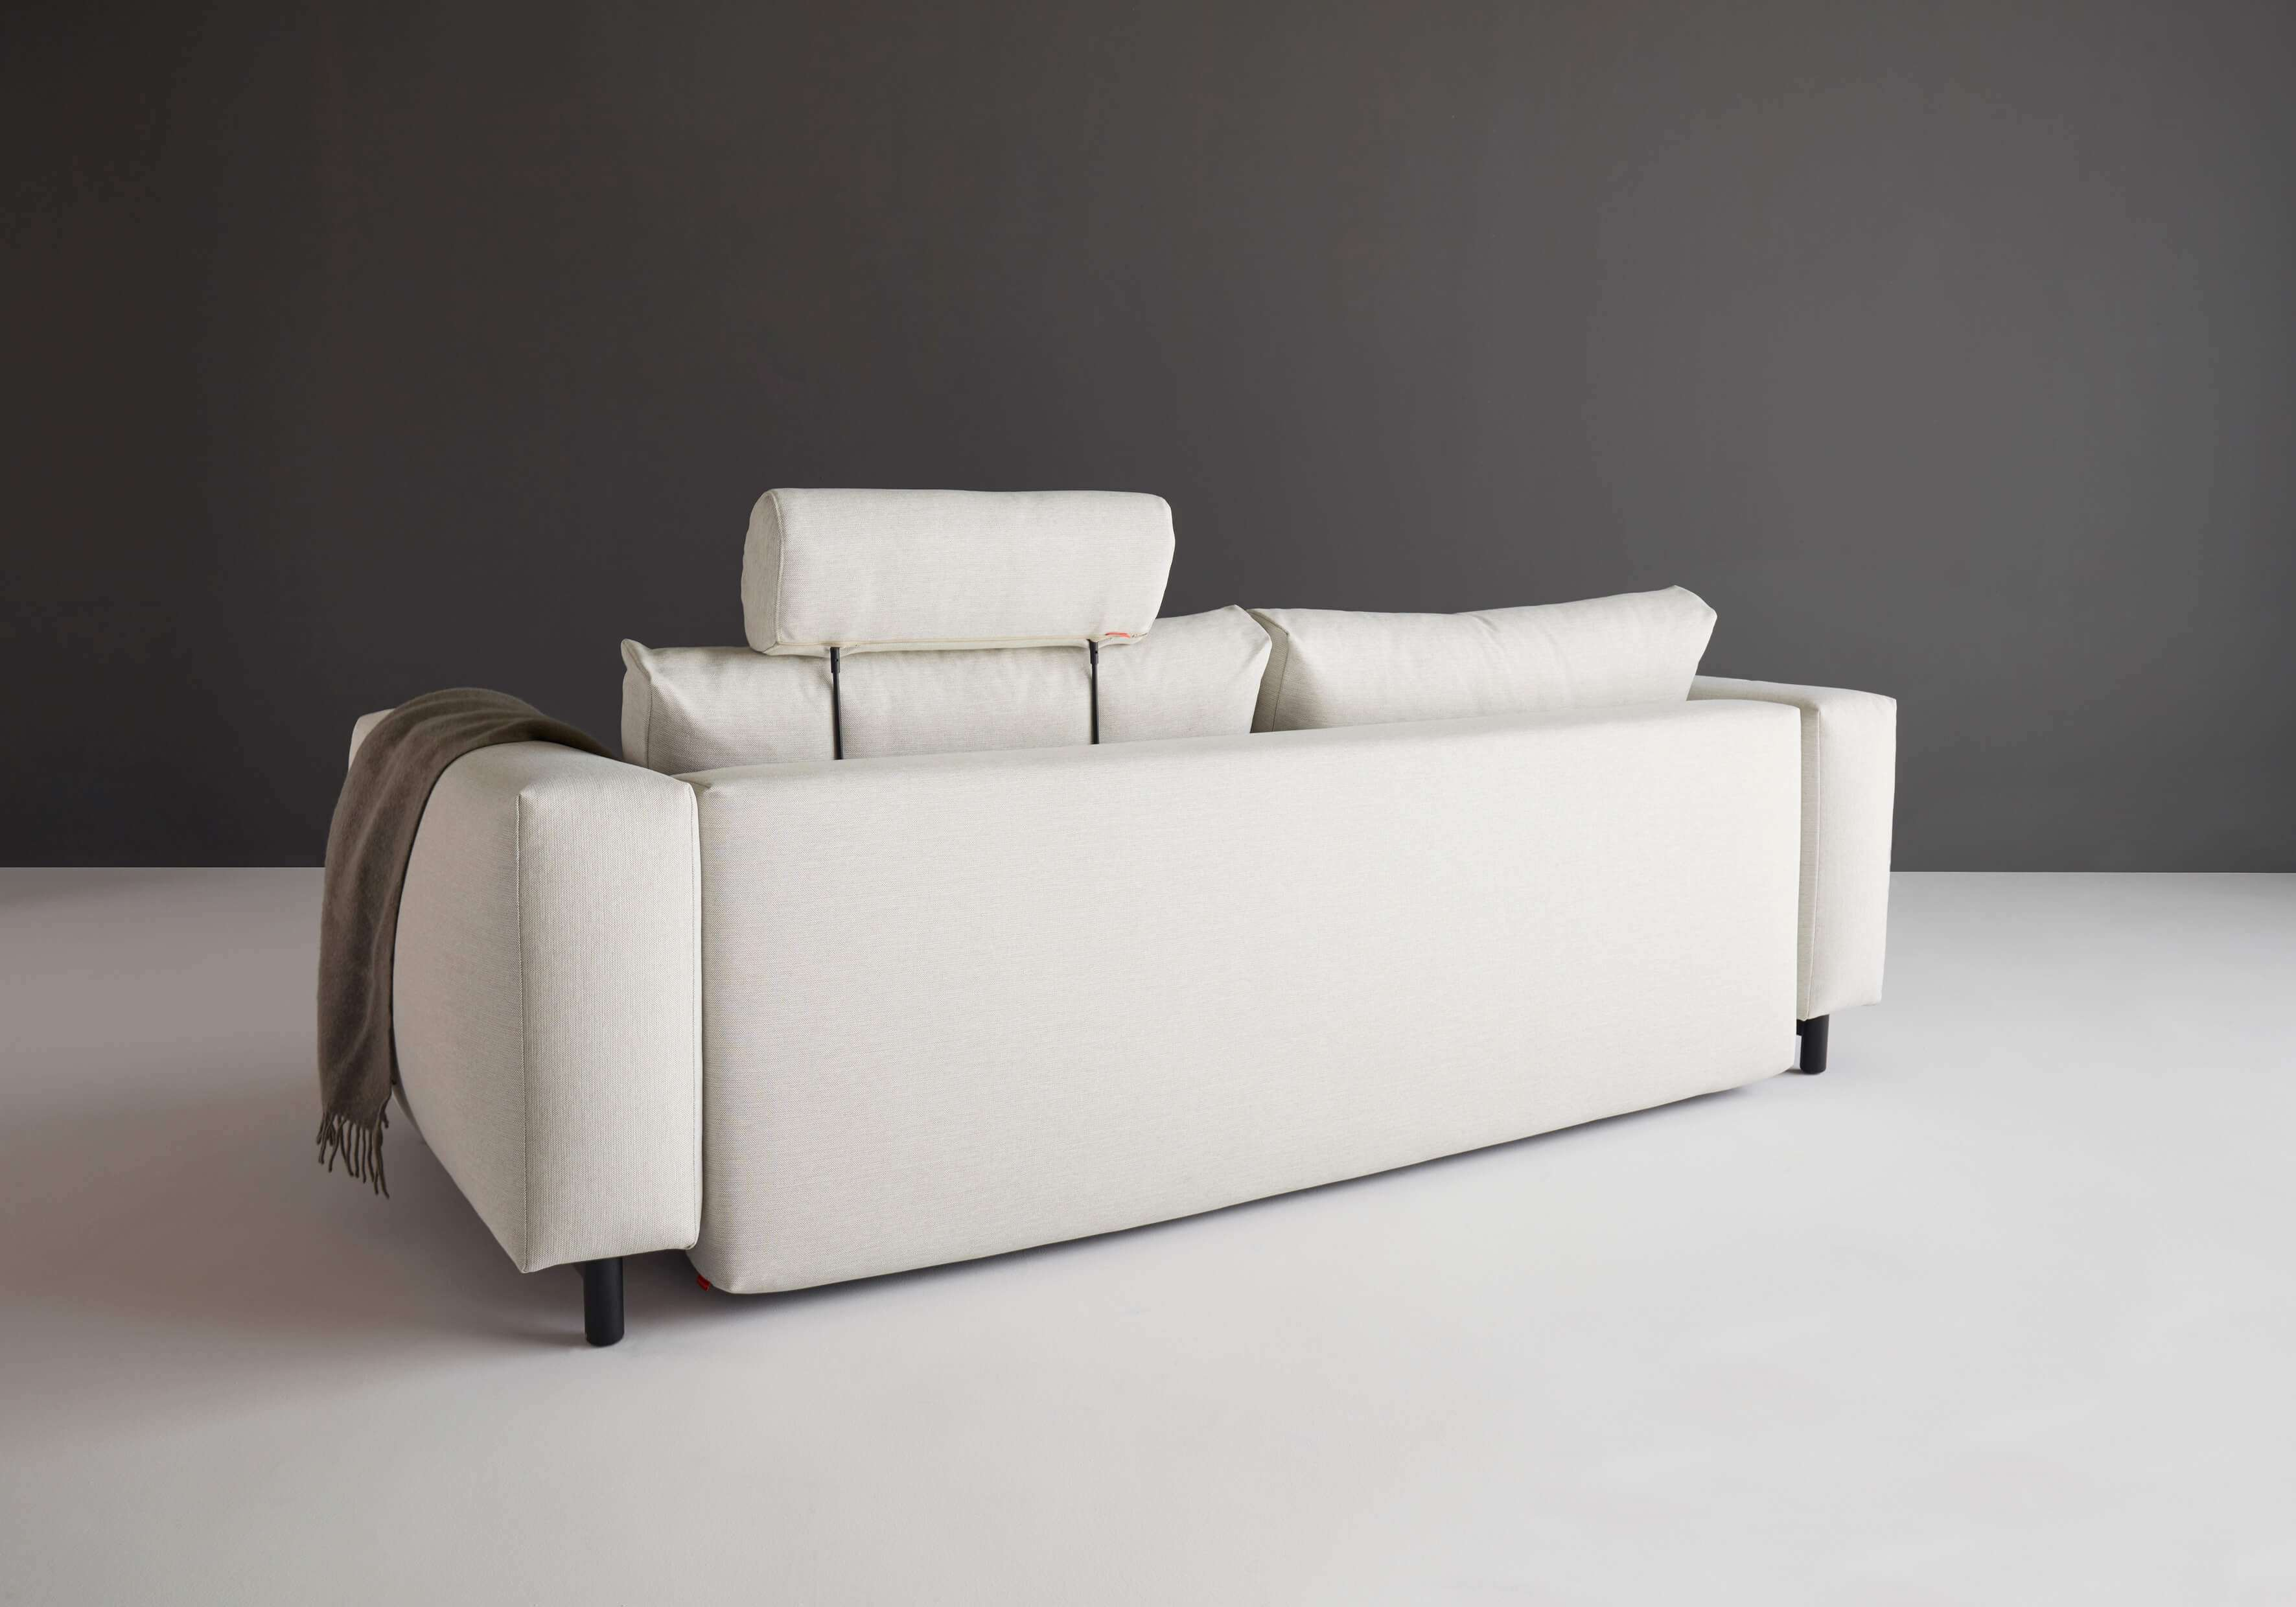 Trendy sofa bed rear view